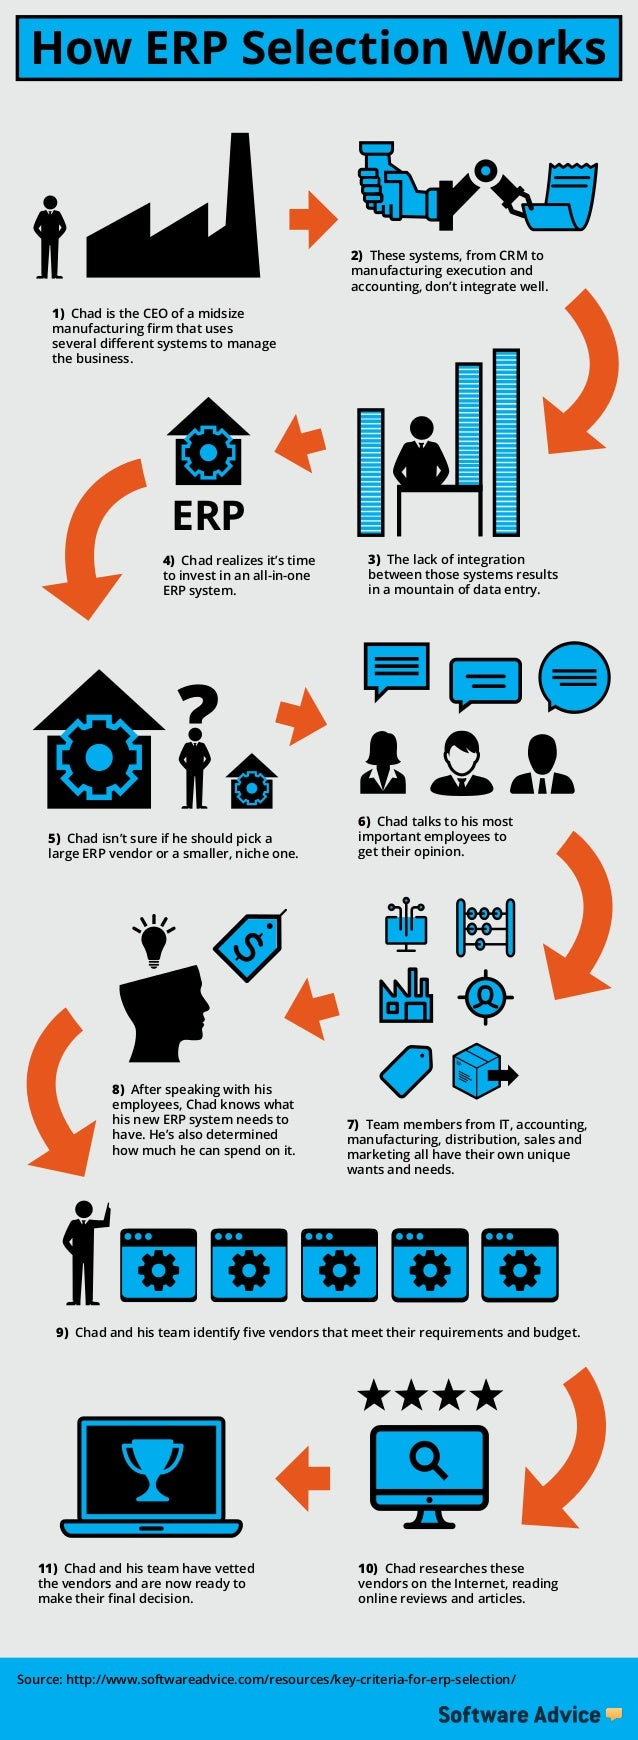 Erp Selection Criteria For Manufacturing Firms Infographic